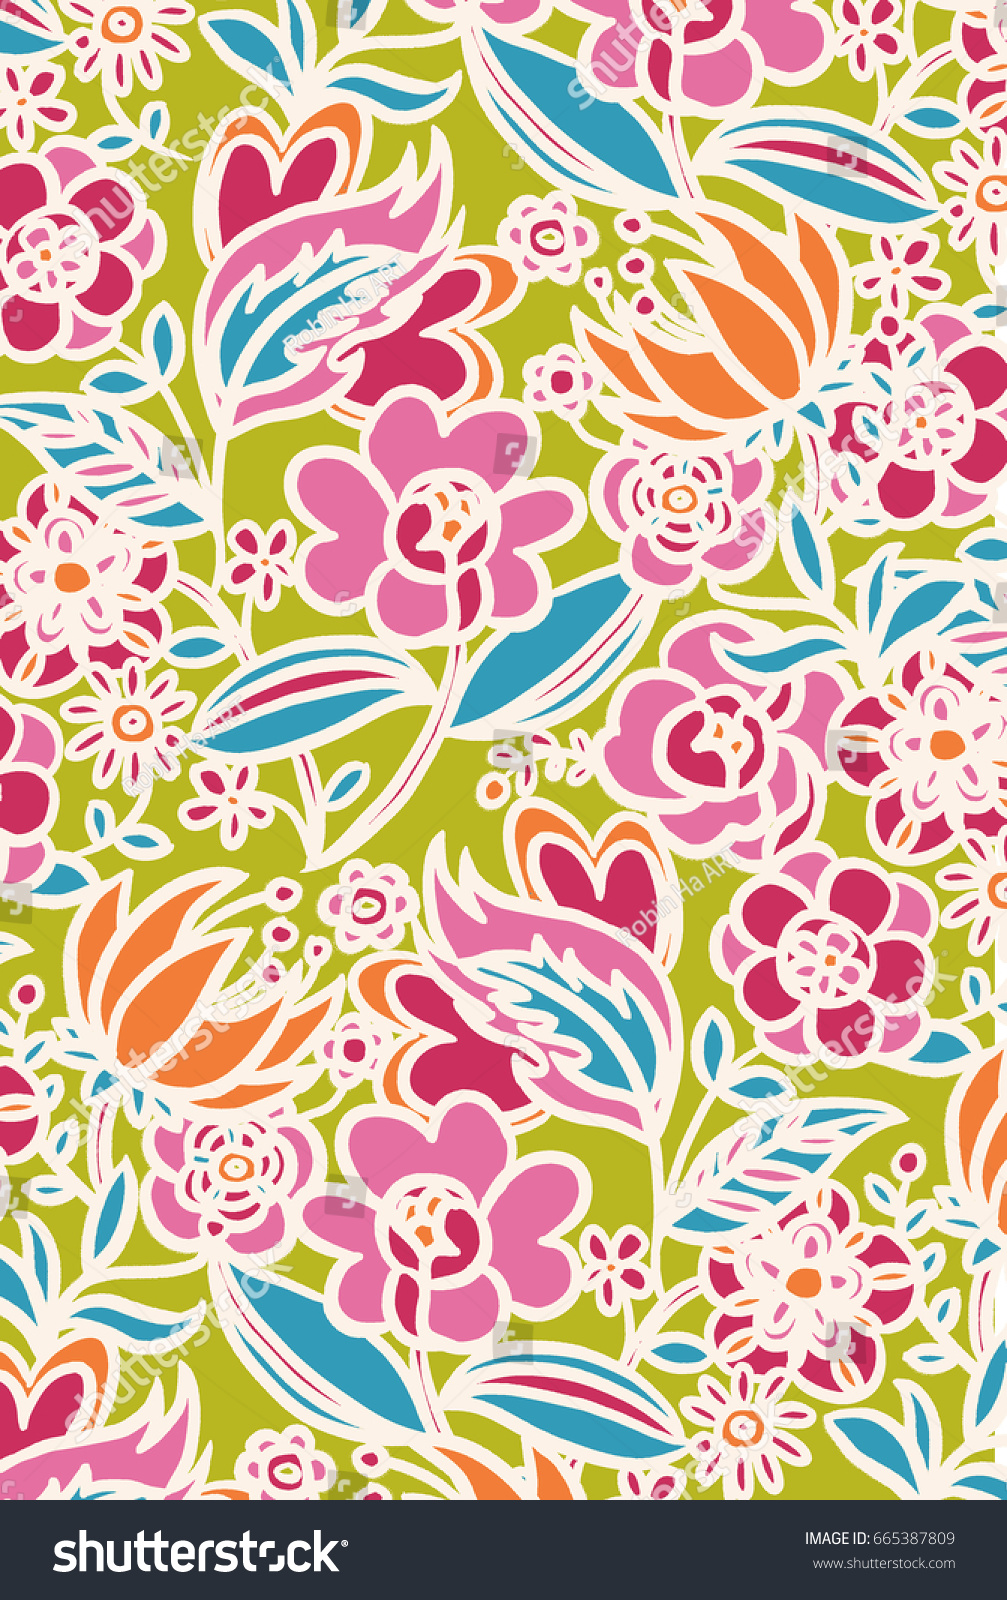 Flowers Colorful Patterns Hand Drawn Flat Stock Illustration ...